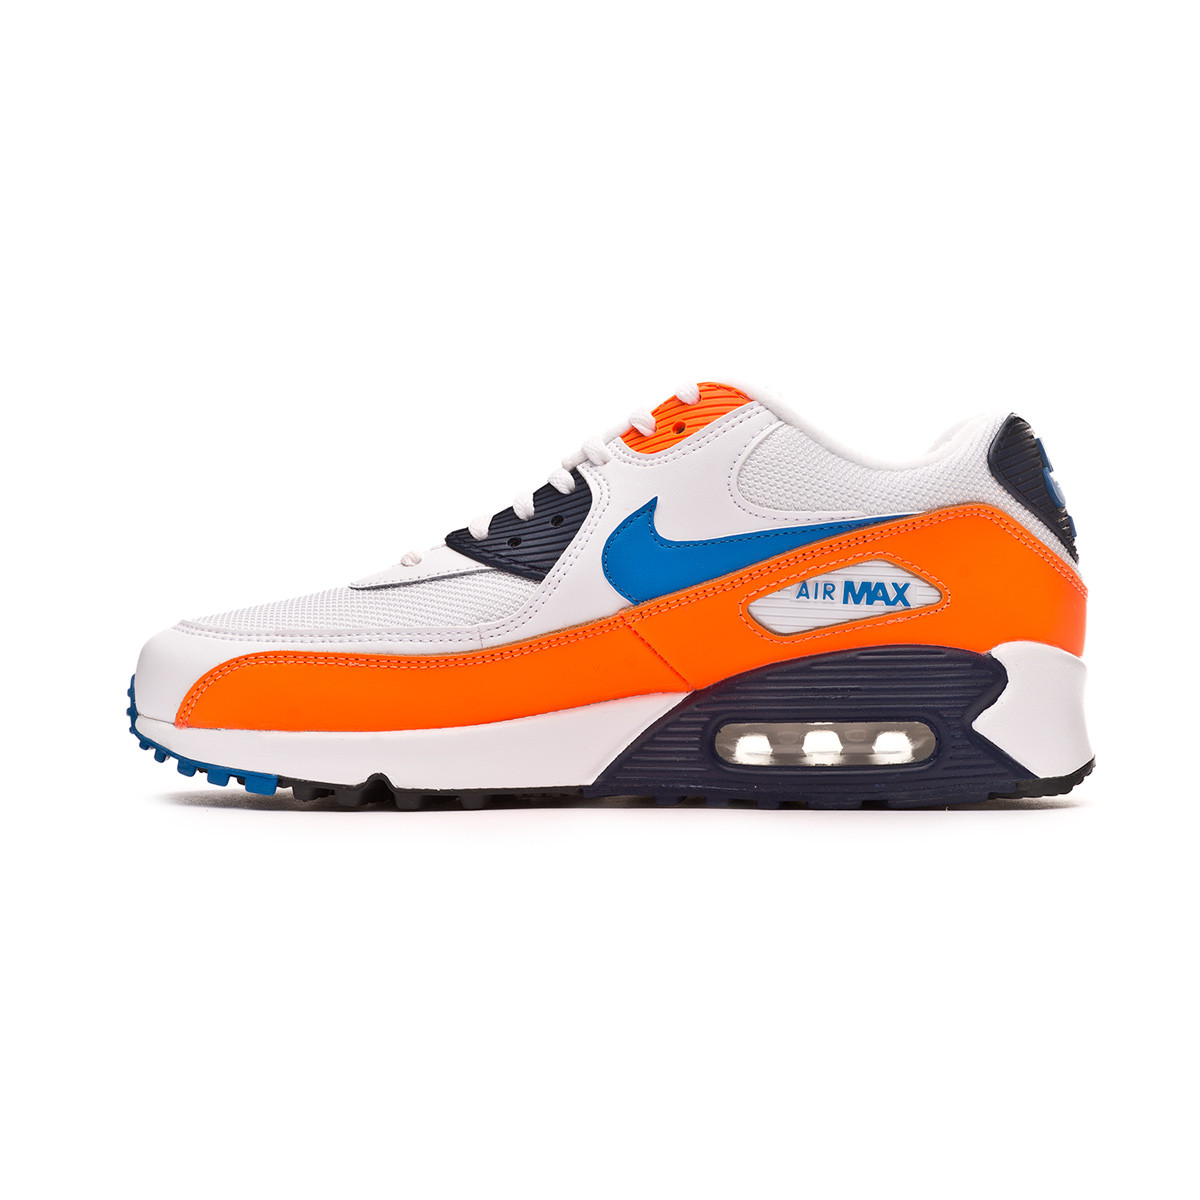 3450ce91089 Trainers Nike Air Max  90 Essential White-Photo blue-Total orange -  Football store Fútbol Emotion